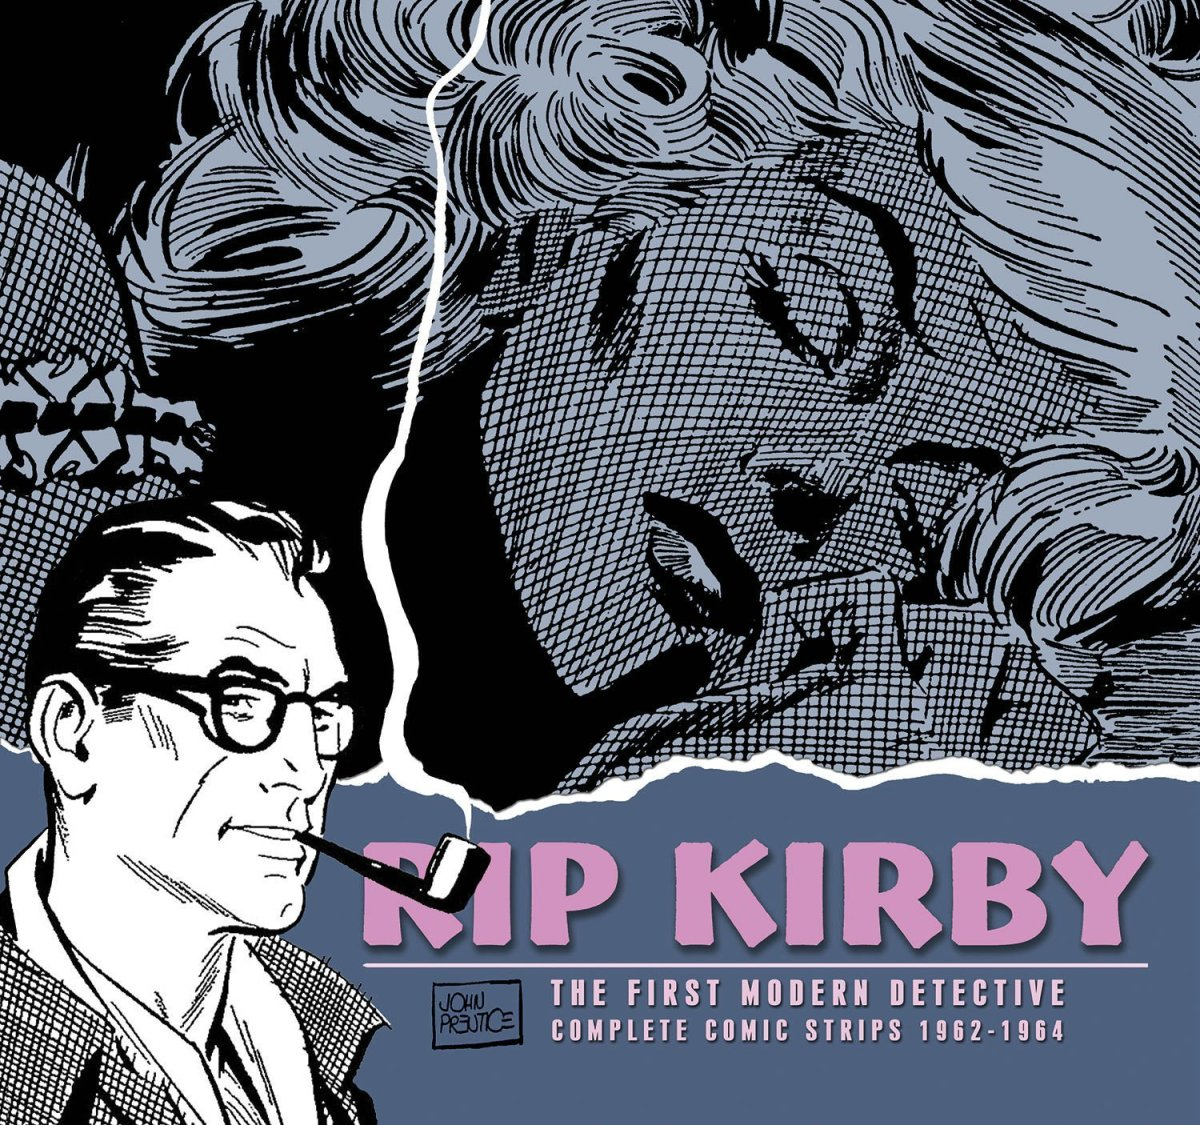 Rip Kirby Vol.7 (collected Daily Strips from February 12, 1962 to October 10, 1964) IDW